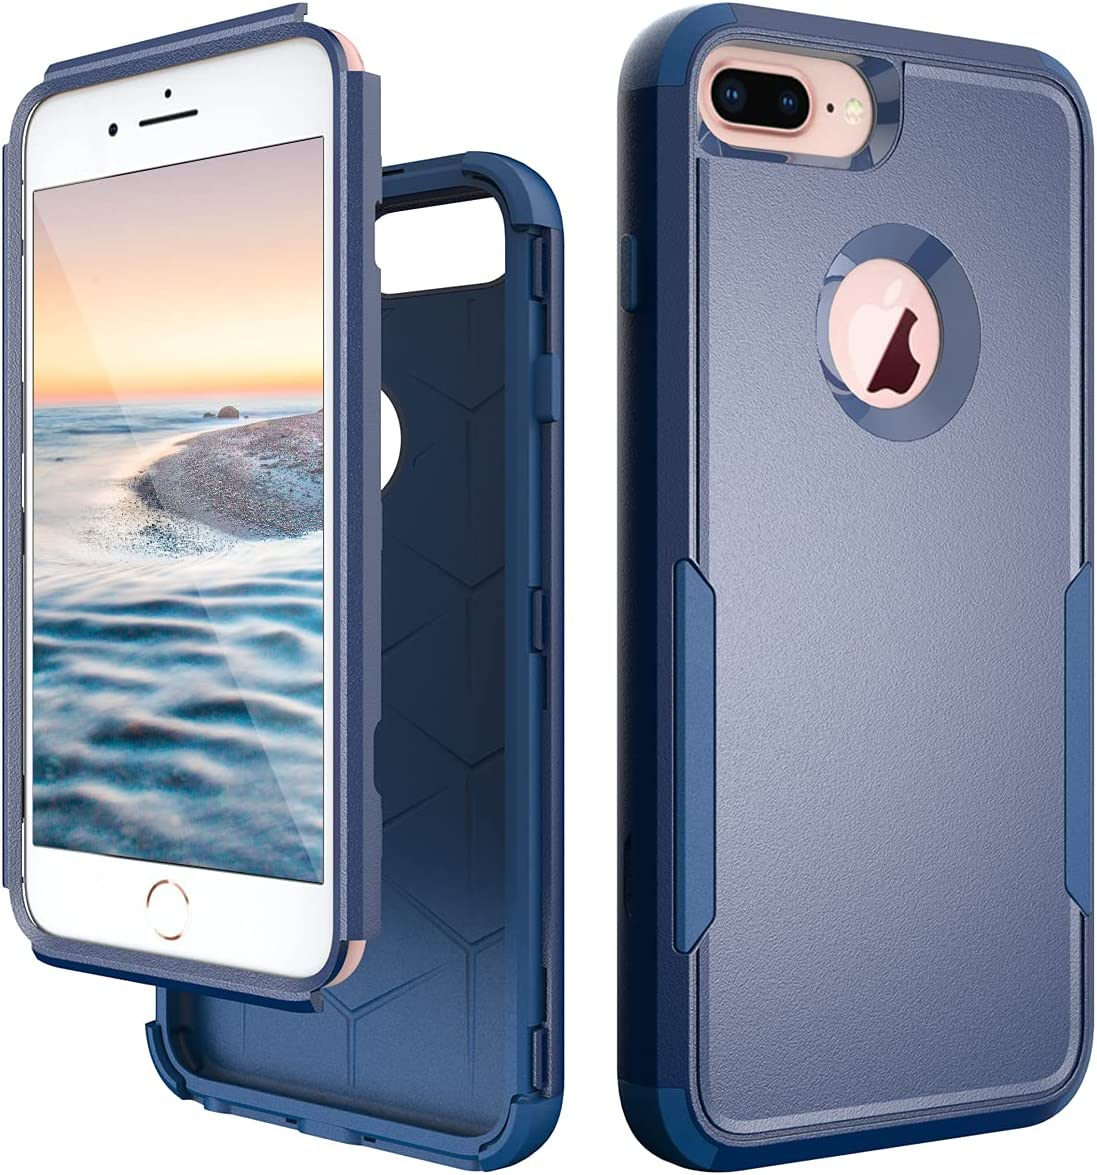 Fingic iPhone 8 Plus Case, iPhone 7 Plus Case, iPhone 6 Plus Case 3 in 1 Heavy Duty Full Body Protection Shockproof Protective Phone Case Cover for Apple iPhone 8 Plus & 7 Plus & 6 Plus, Navy Blue